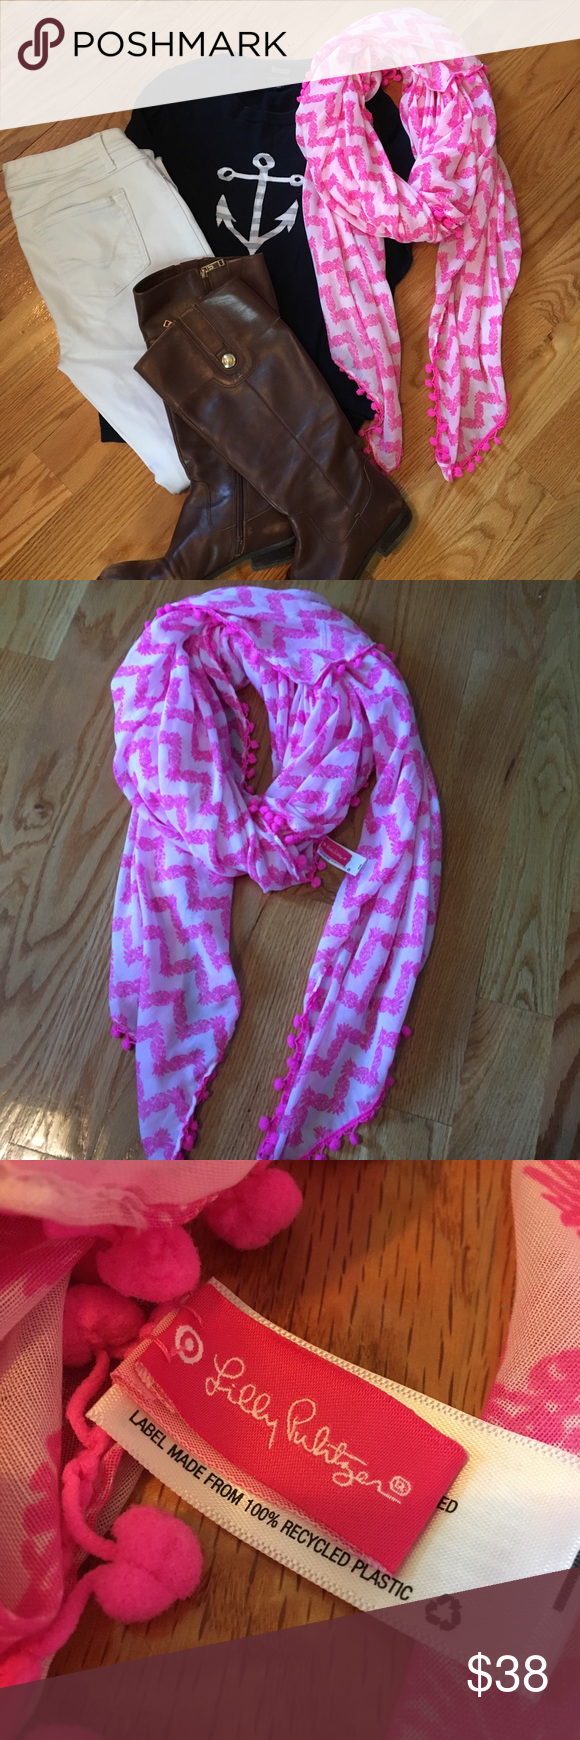 Lilly for Target Belladonna scarf Adorable and large pink and white scarf with a pineapples print and a pink Pom Pom trim! Only worn once. Lilly Pulitzer for Target Accessories Scarves & Wraps